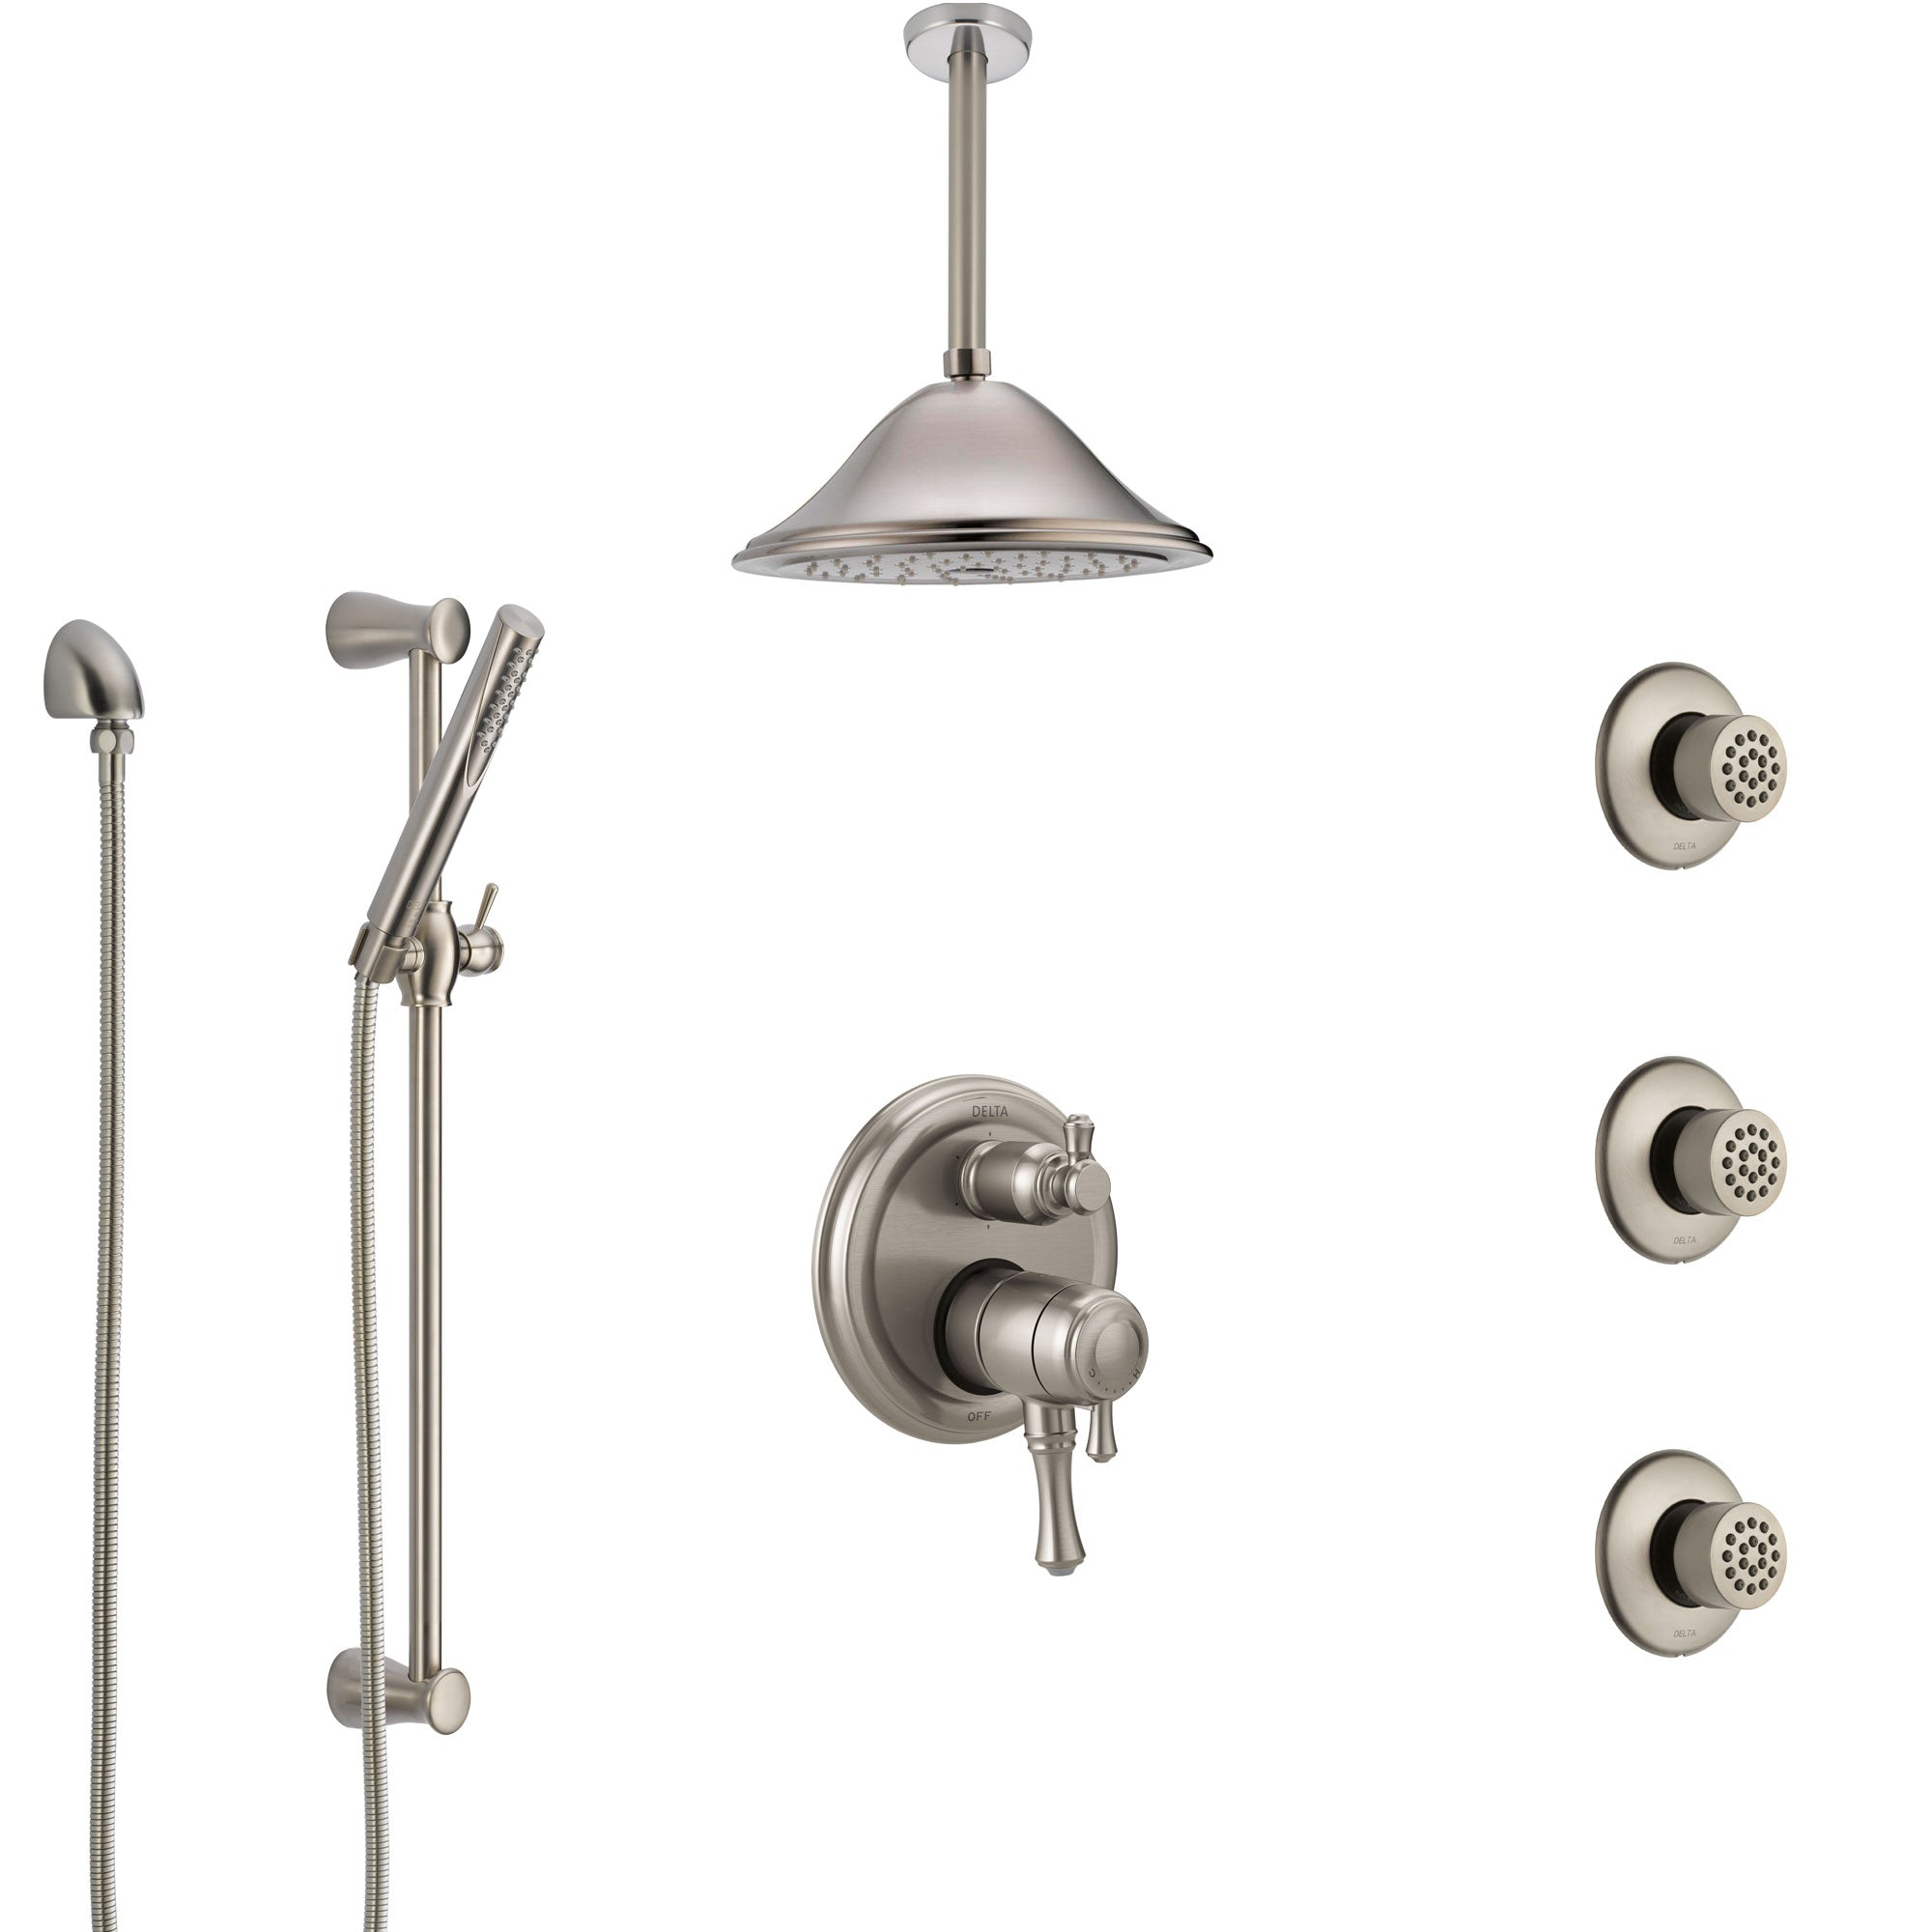 Delta Cassidy Dual Control Handle Stainless Steel Finish Integrated Diverter Shower System, Ceiling Showerhead, 3 Body Sprays, Hand Spray SS27997SS10